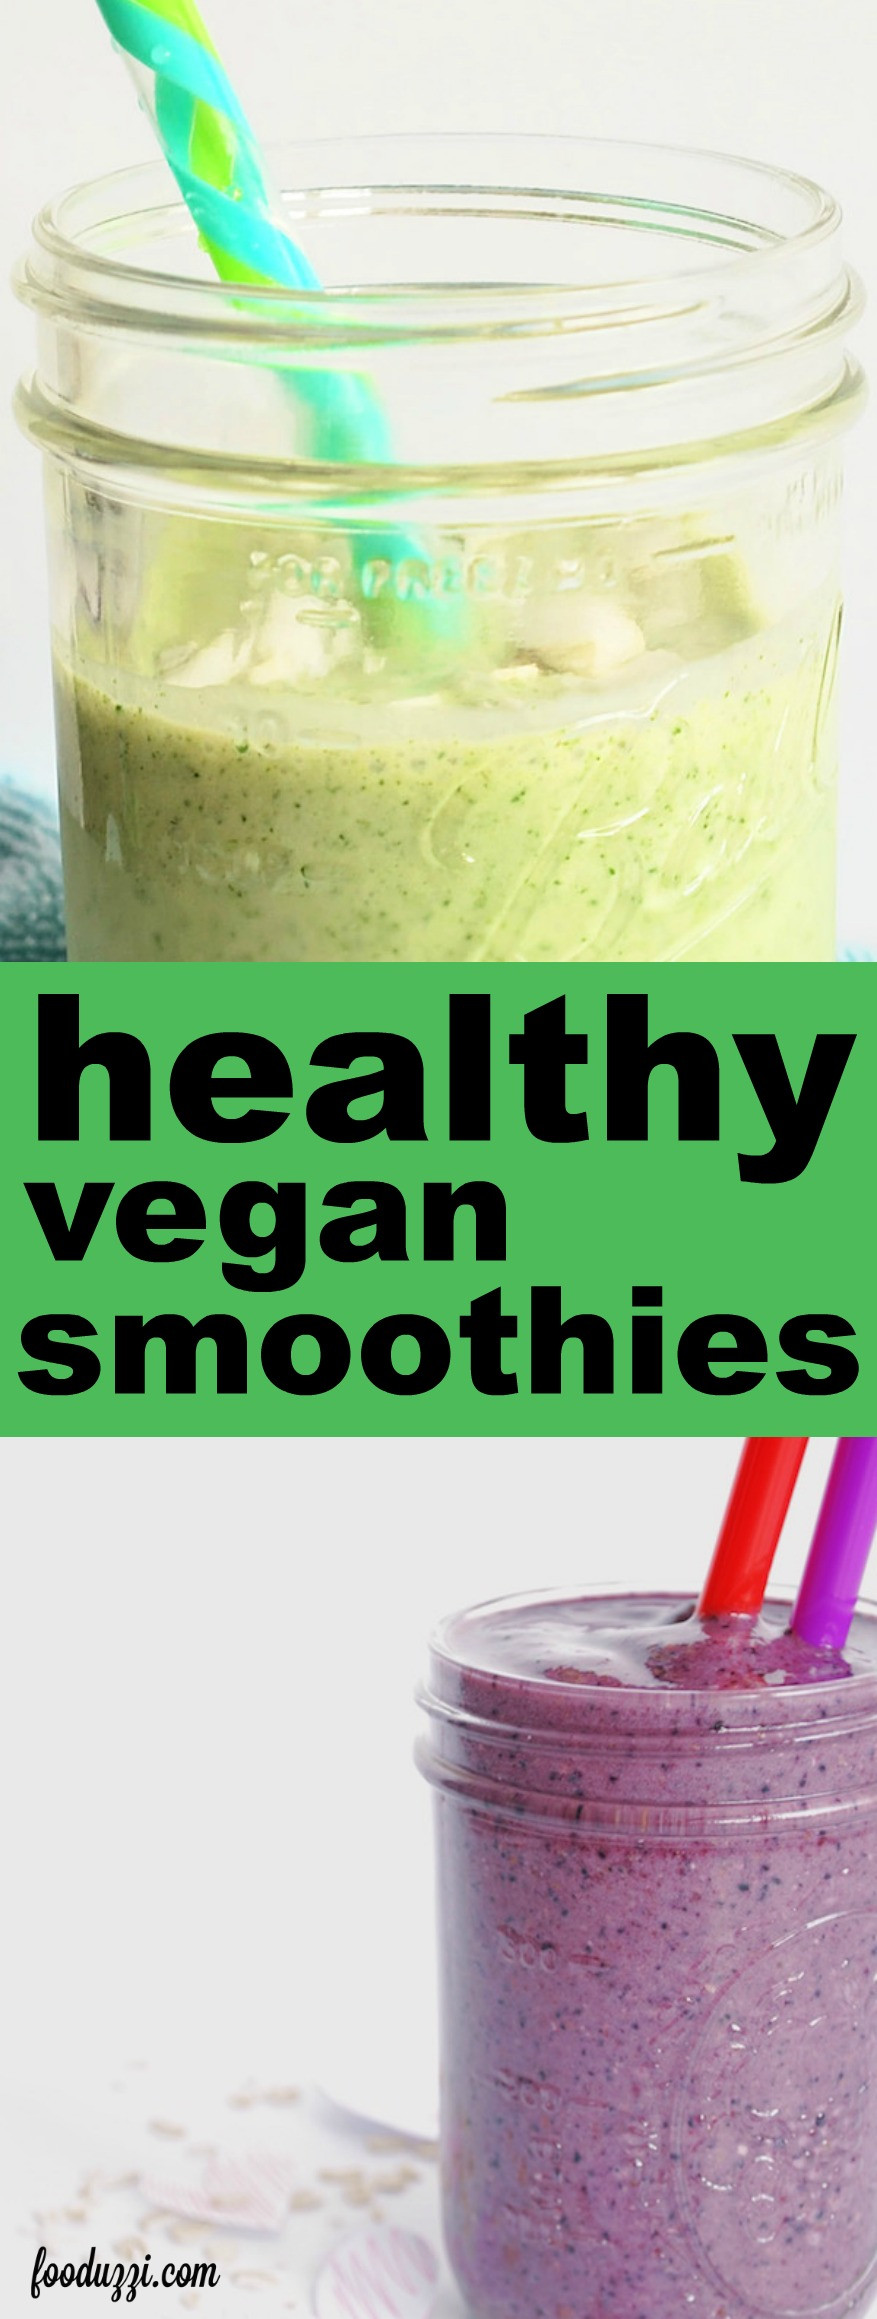 Are Smoothies Healthy  Healthy Vegan Smoothie Recipes for the New Year Fooduzzi